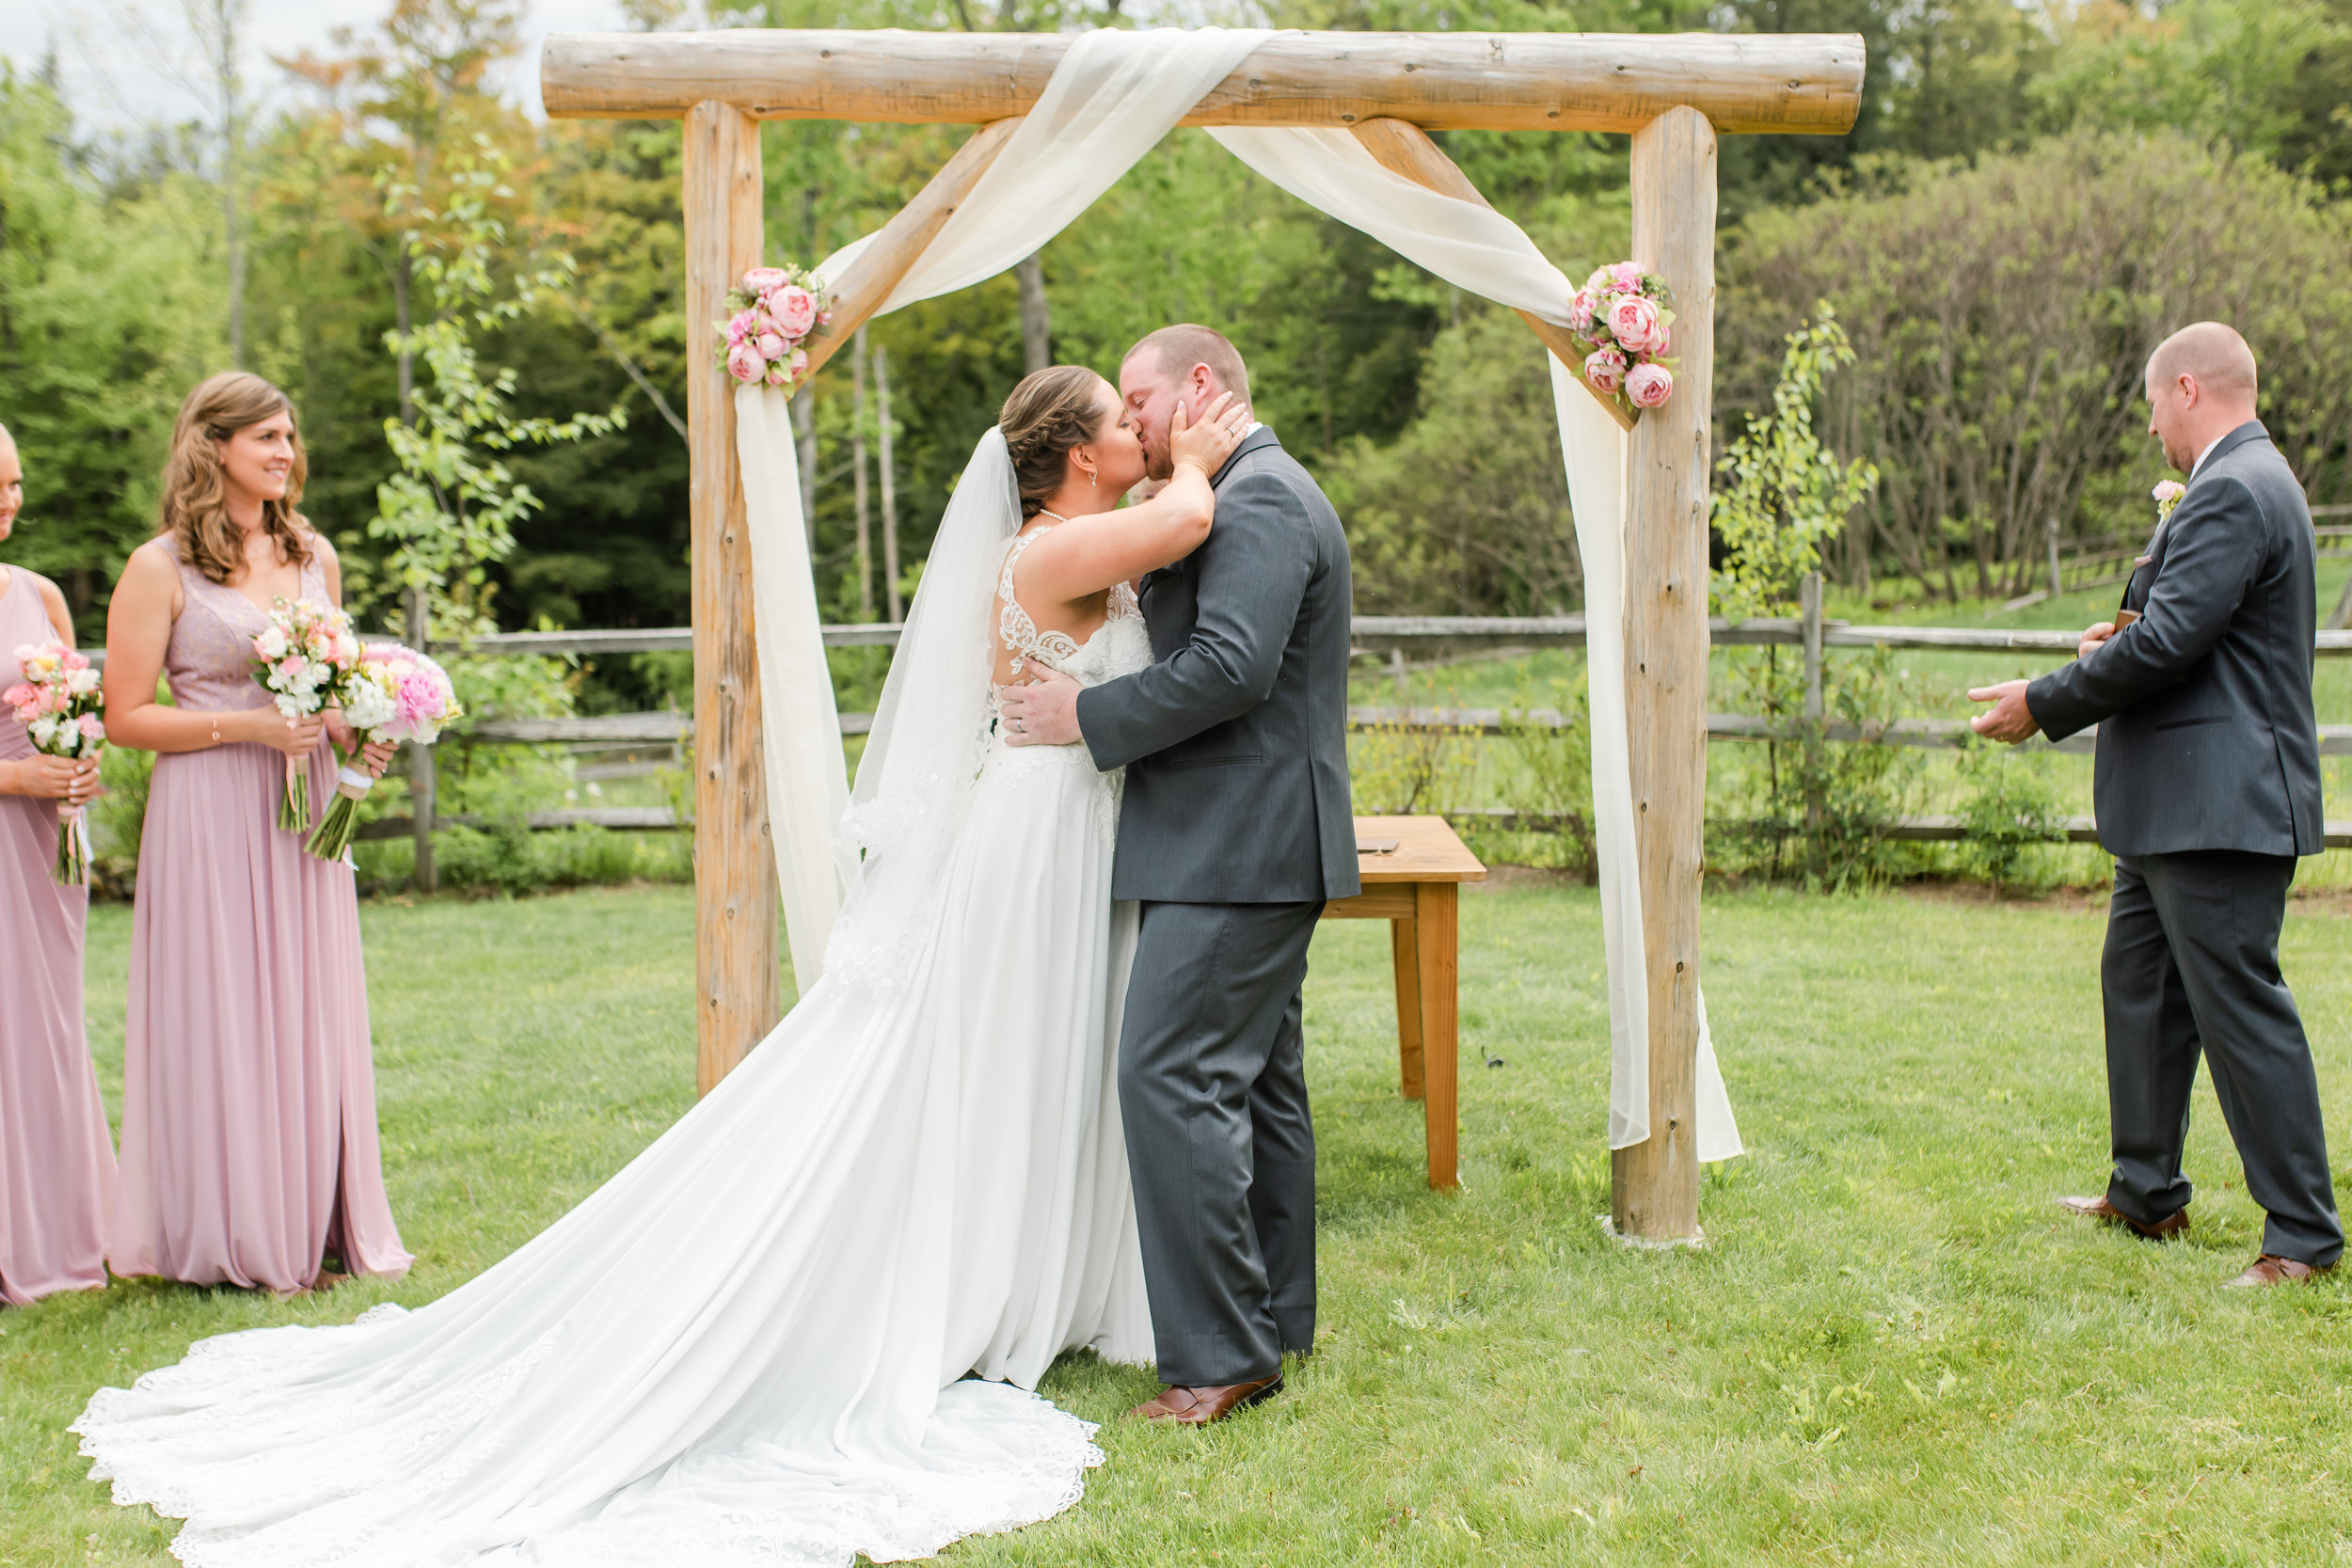 Karli + Josh -Blog Post-33.jpg